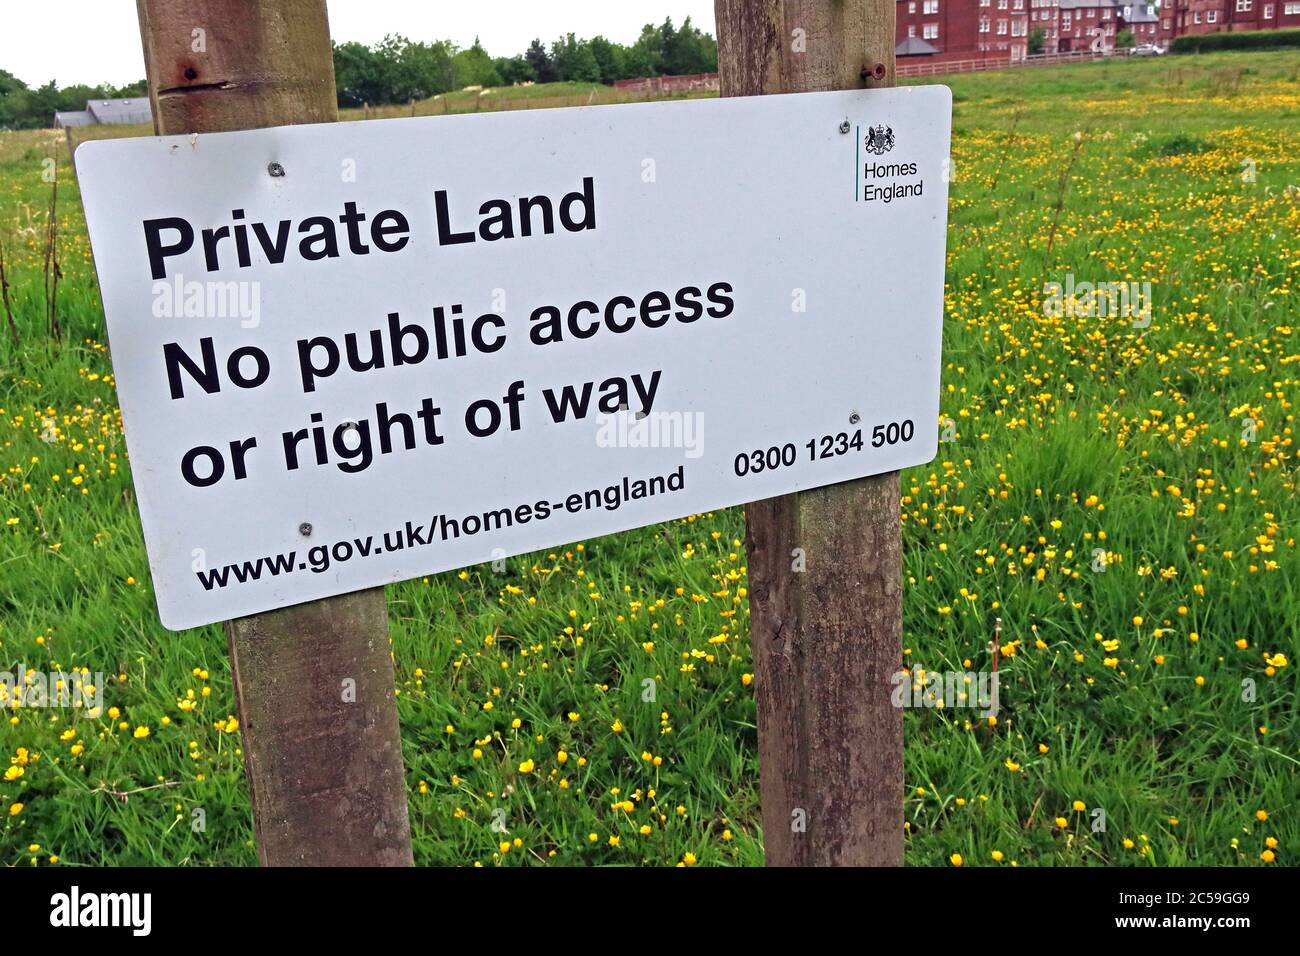 Private Land Sign, No Public Access or Right Of way,Homes-England,Homes, England,DCLG - Grappenhall Heys, Warrington, Cheshire, WA4 Stock Photo